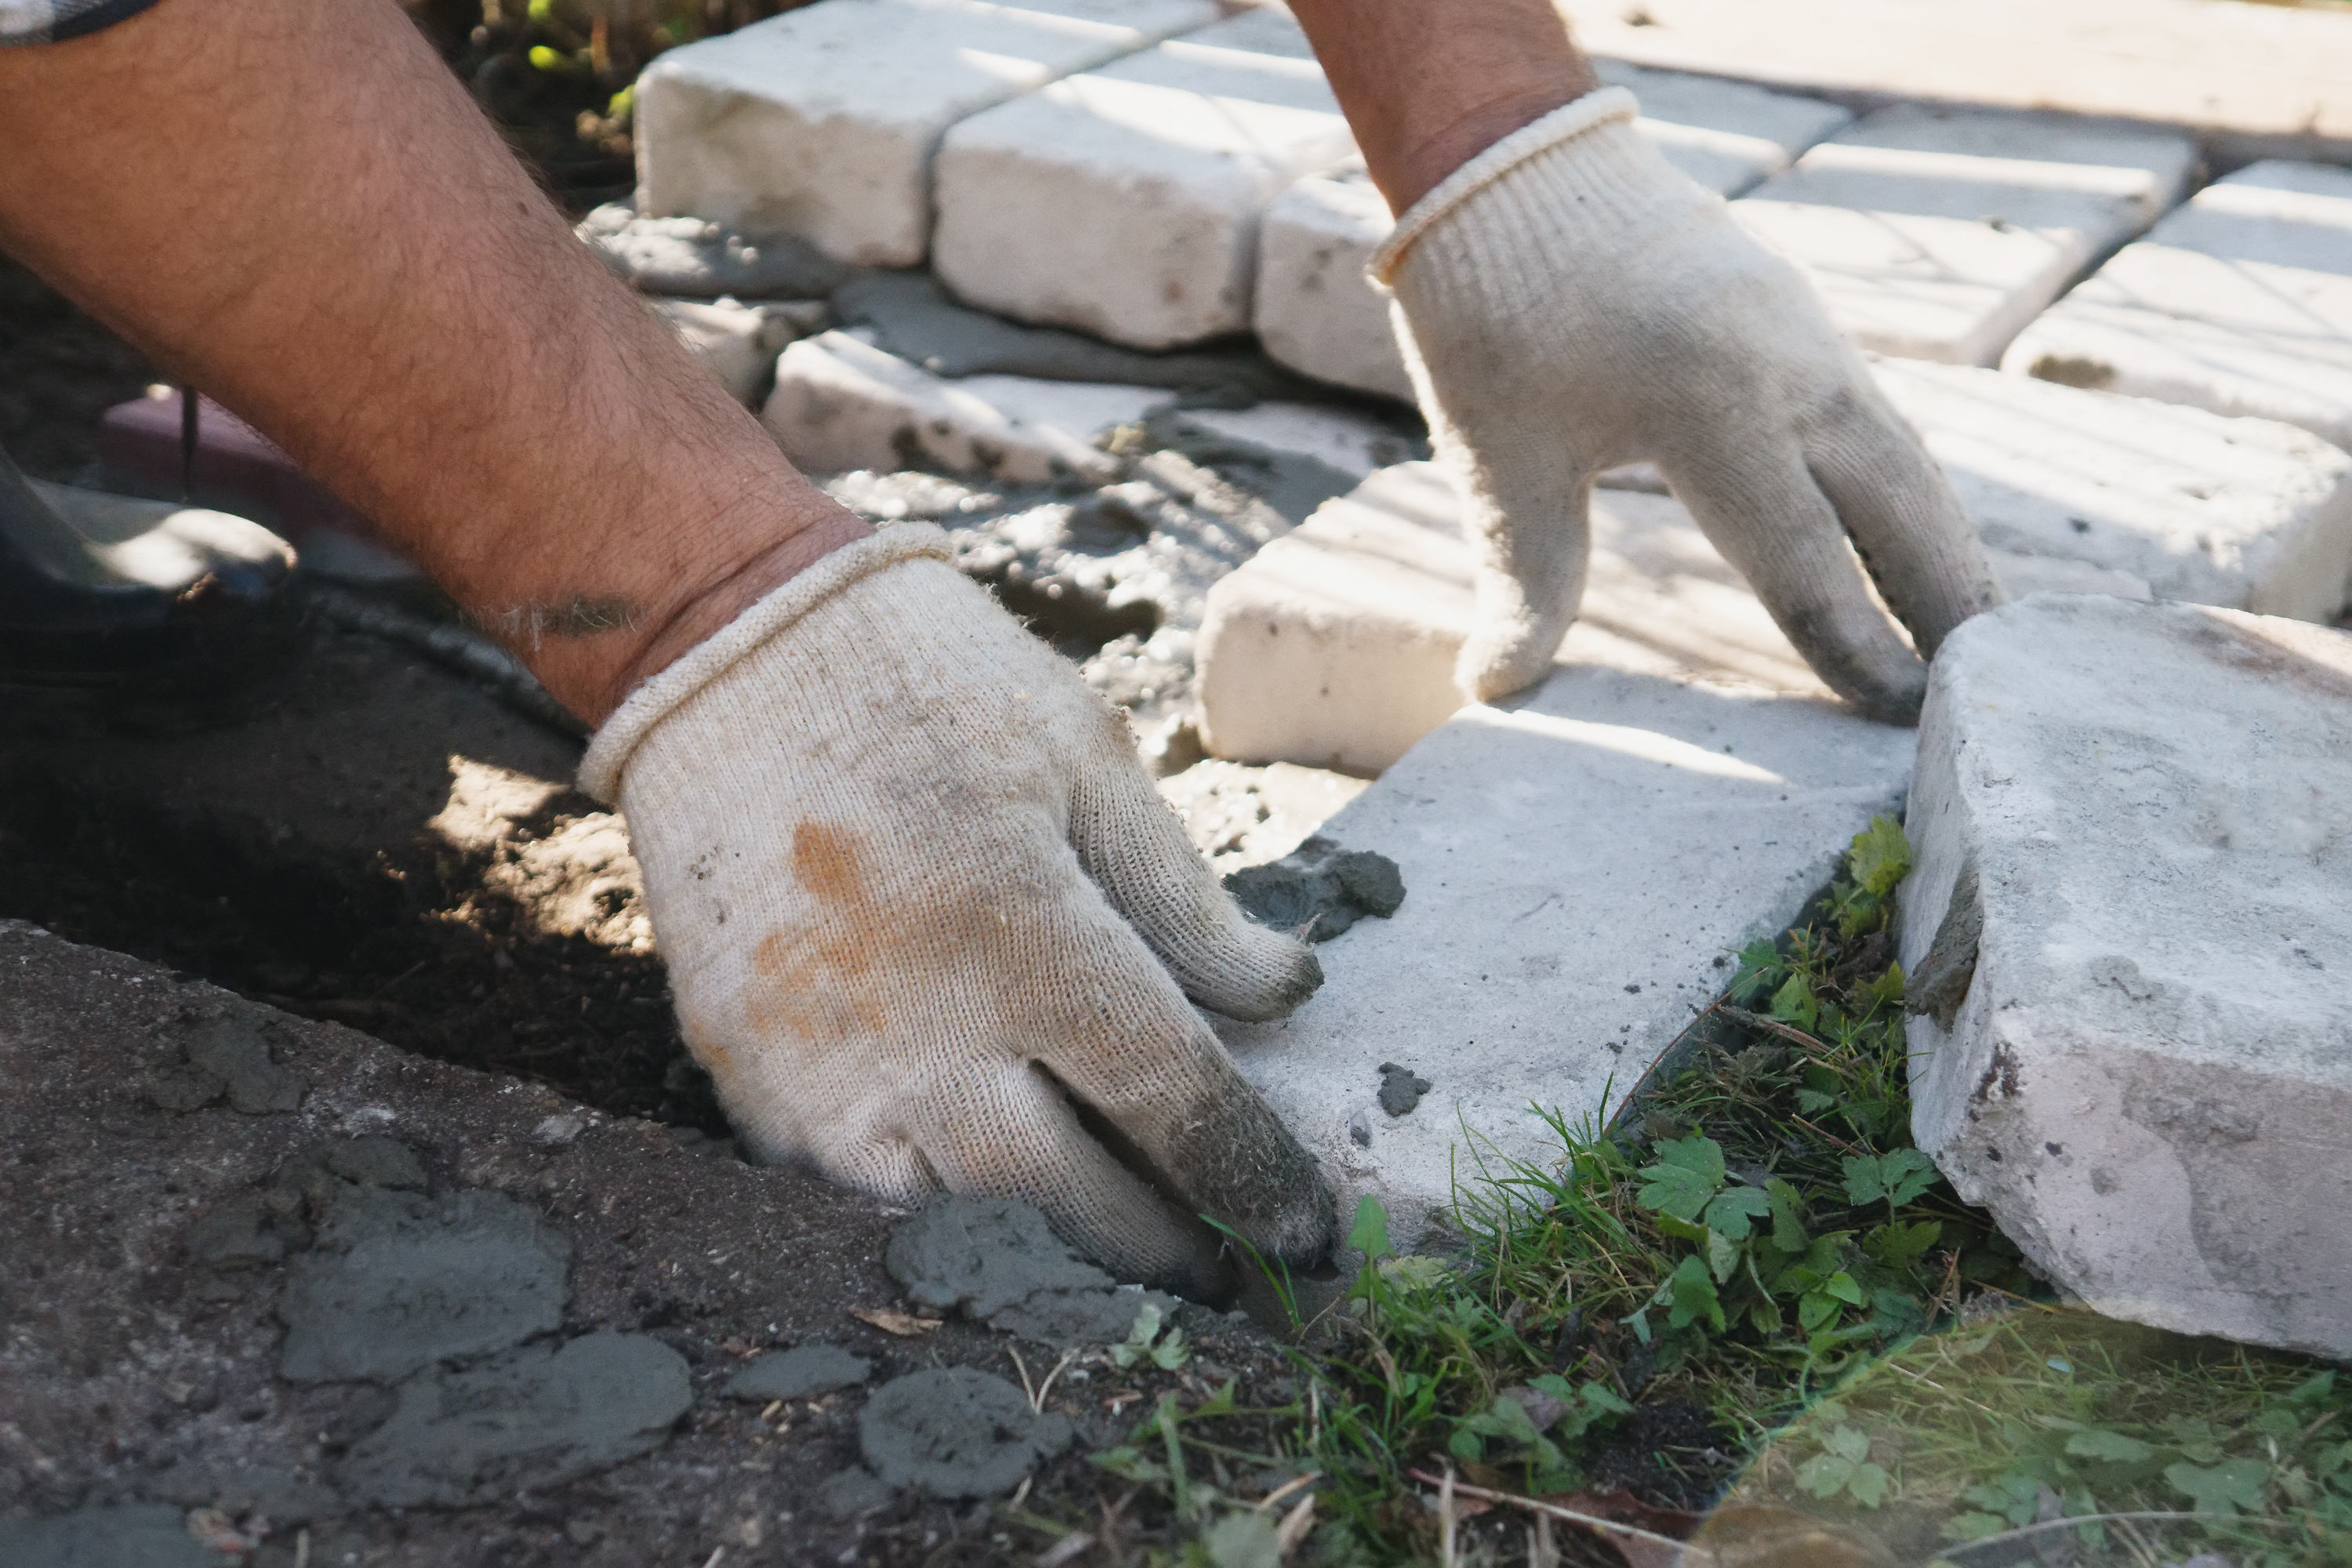 Do You Use Mason Sand or Playground Sand in a Paver Base